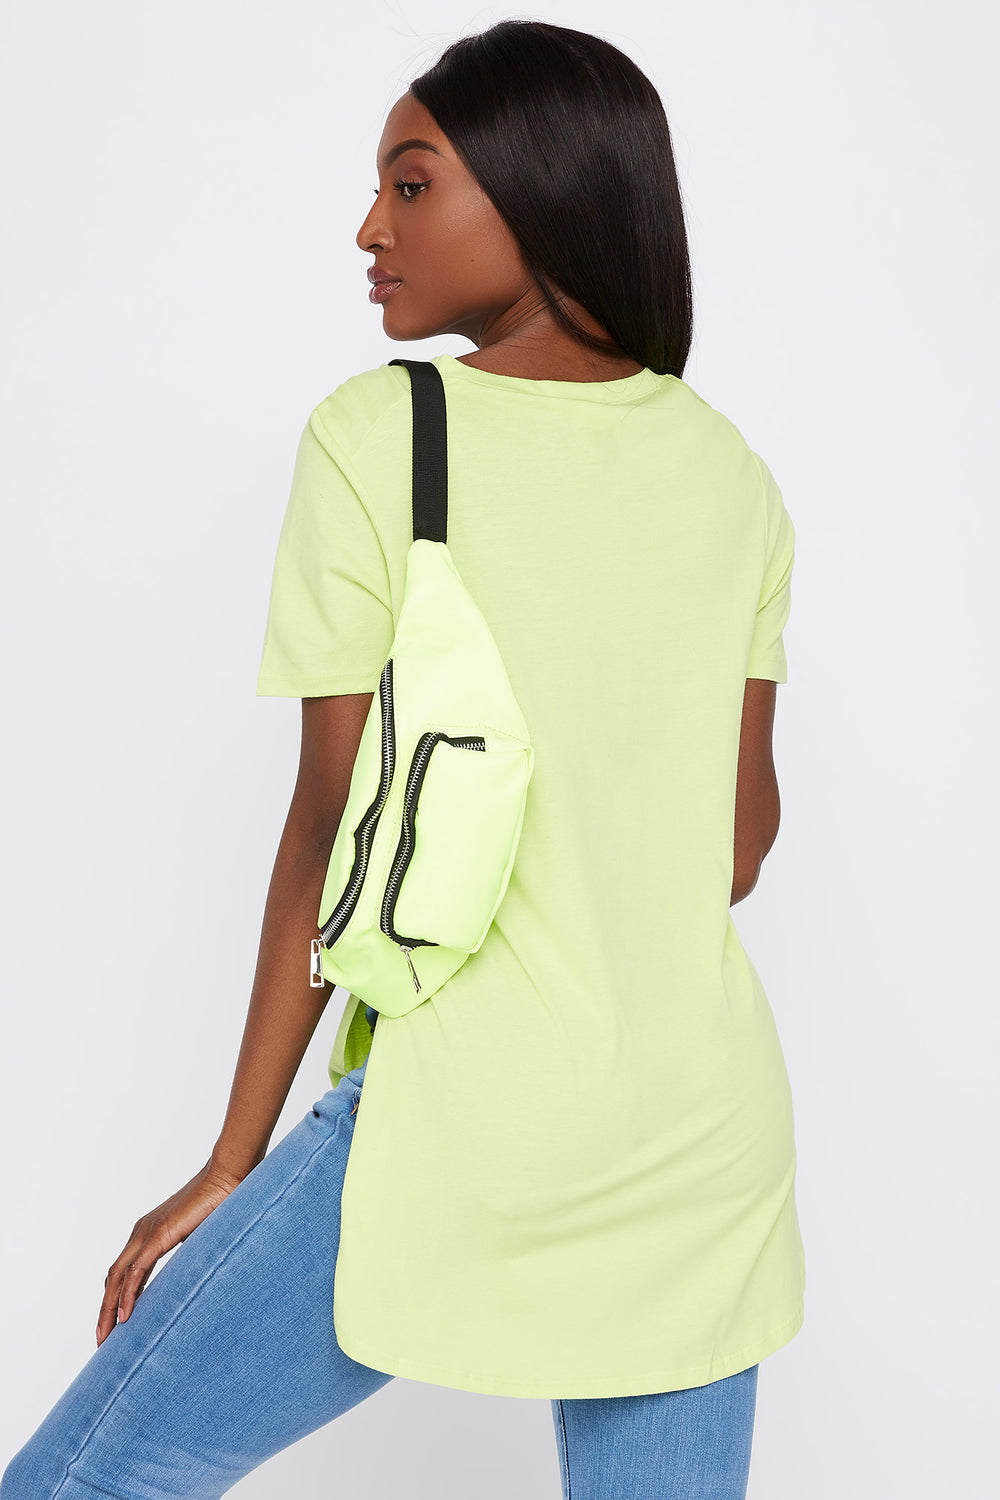 Slit Scoop Neck T-Shirt Neon Yellow